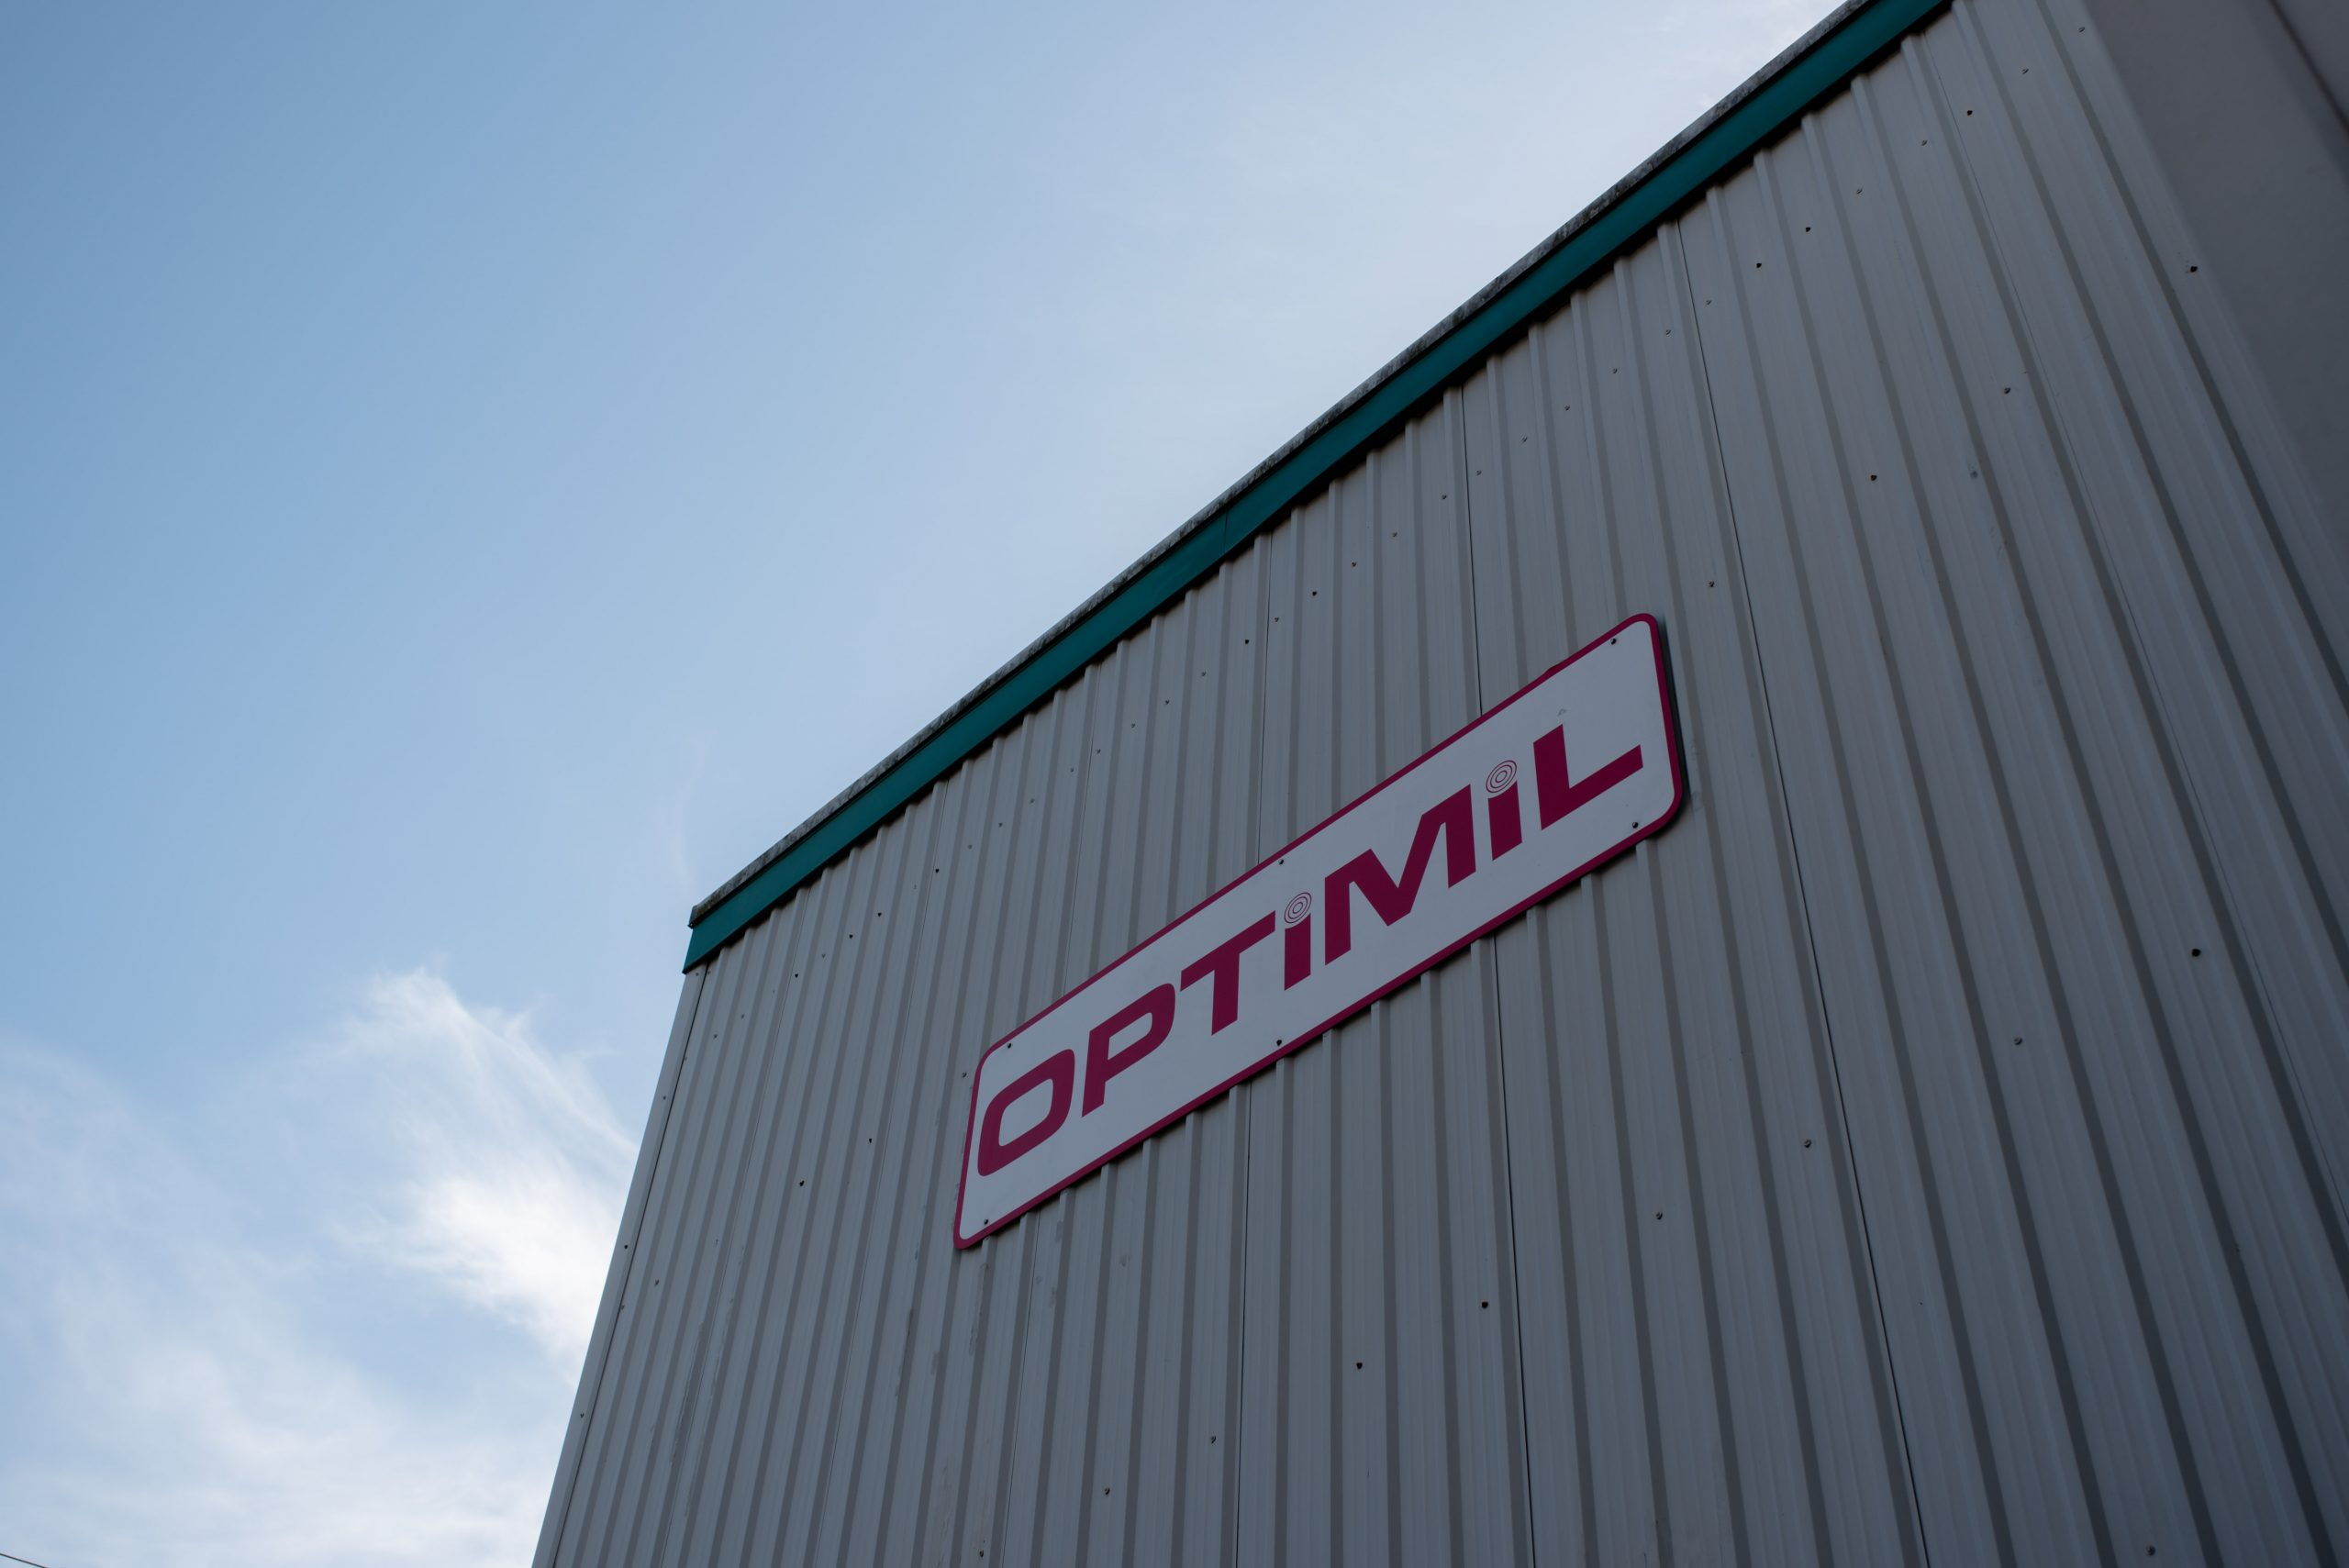 Optimil machinery building in Delta producing sawmill machinery